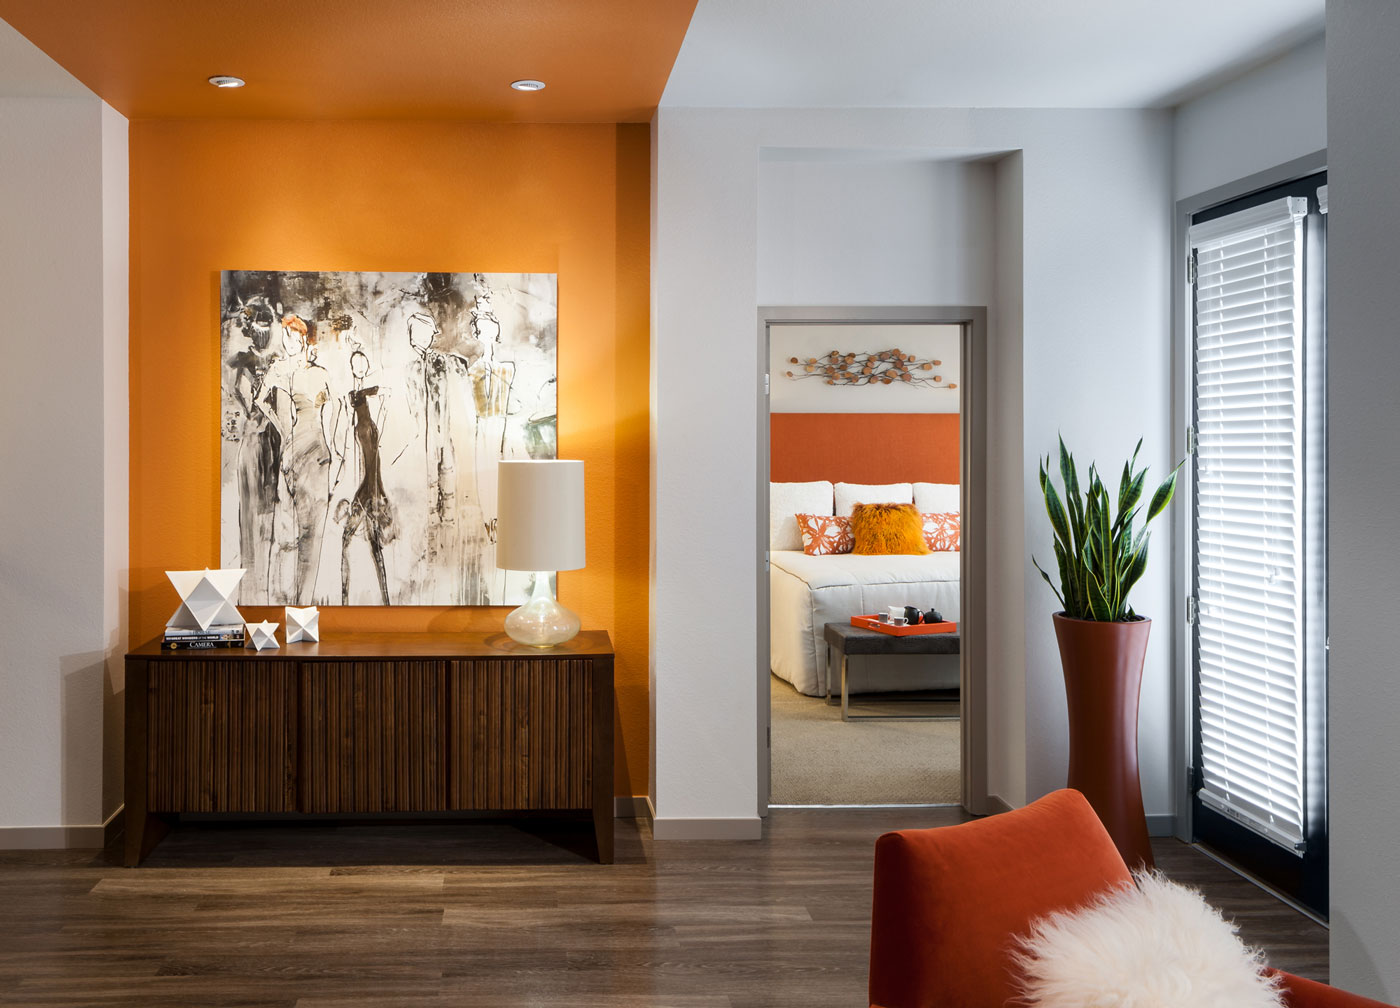 Luxury apartment merchandised with high-end finishes orange accents, and contemporary art in Englewood, Colorado.